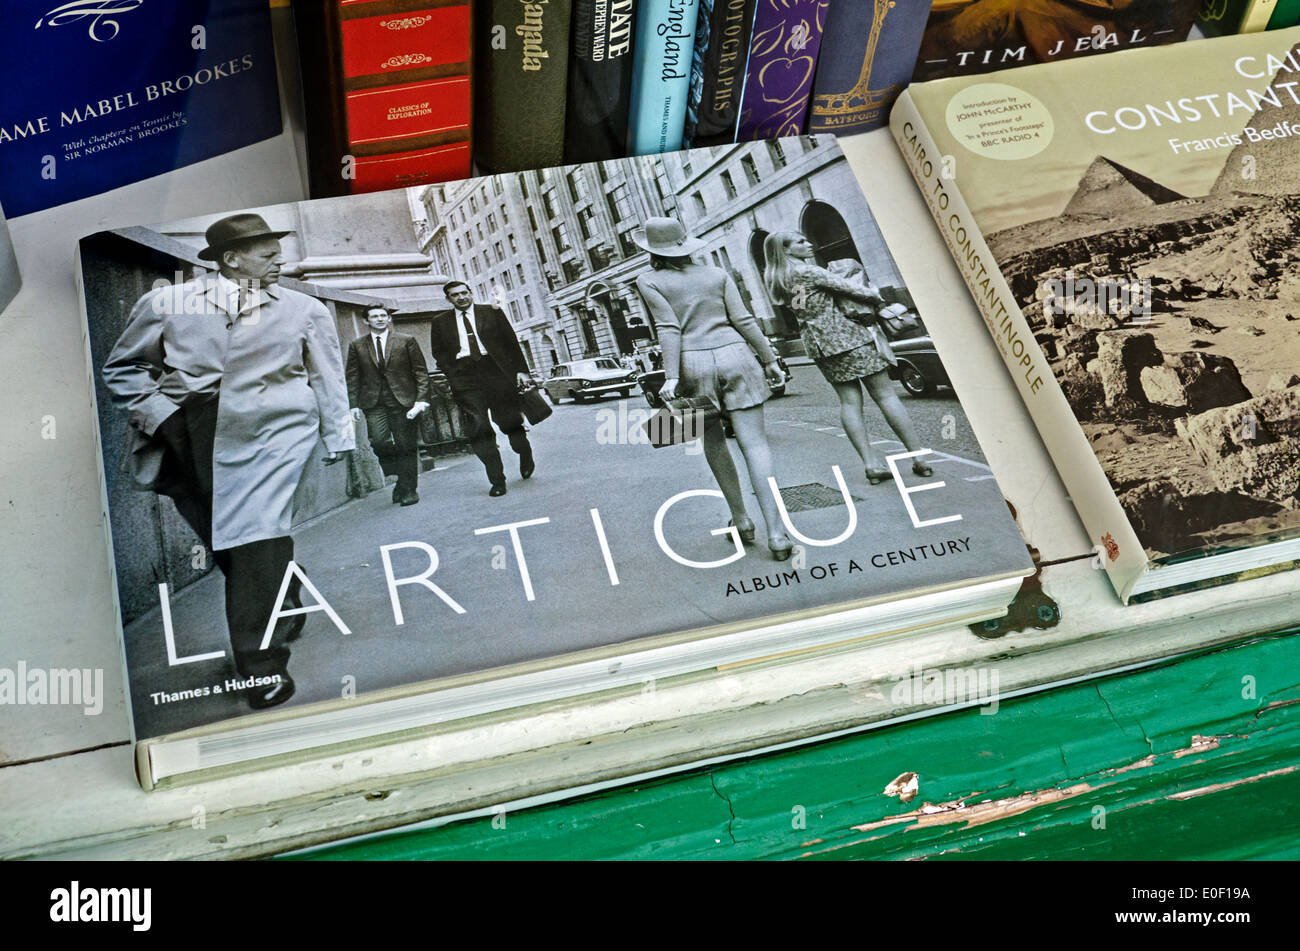 A photography book by the French photographer Jacques Henri Lartigue in the window of a secondhand bookshop in Edinburgh. - Stock Image